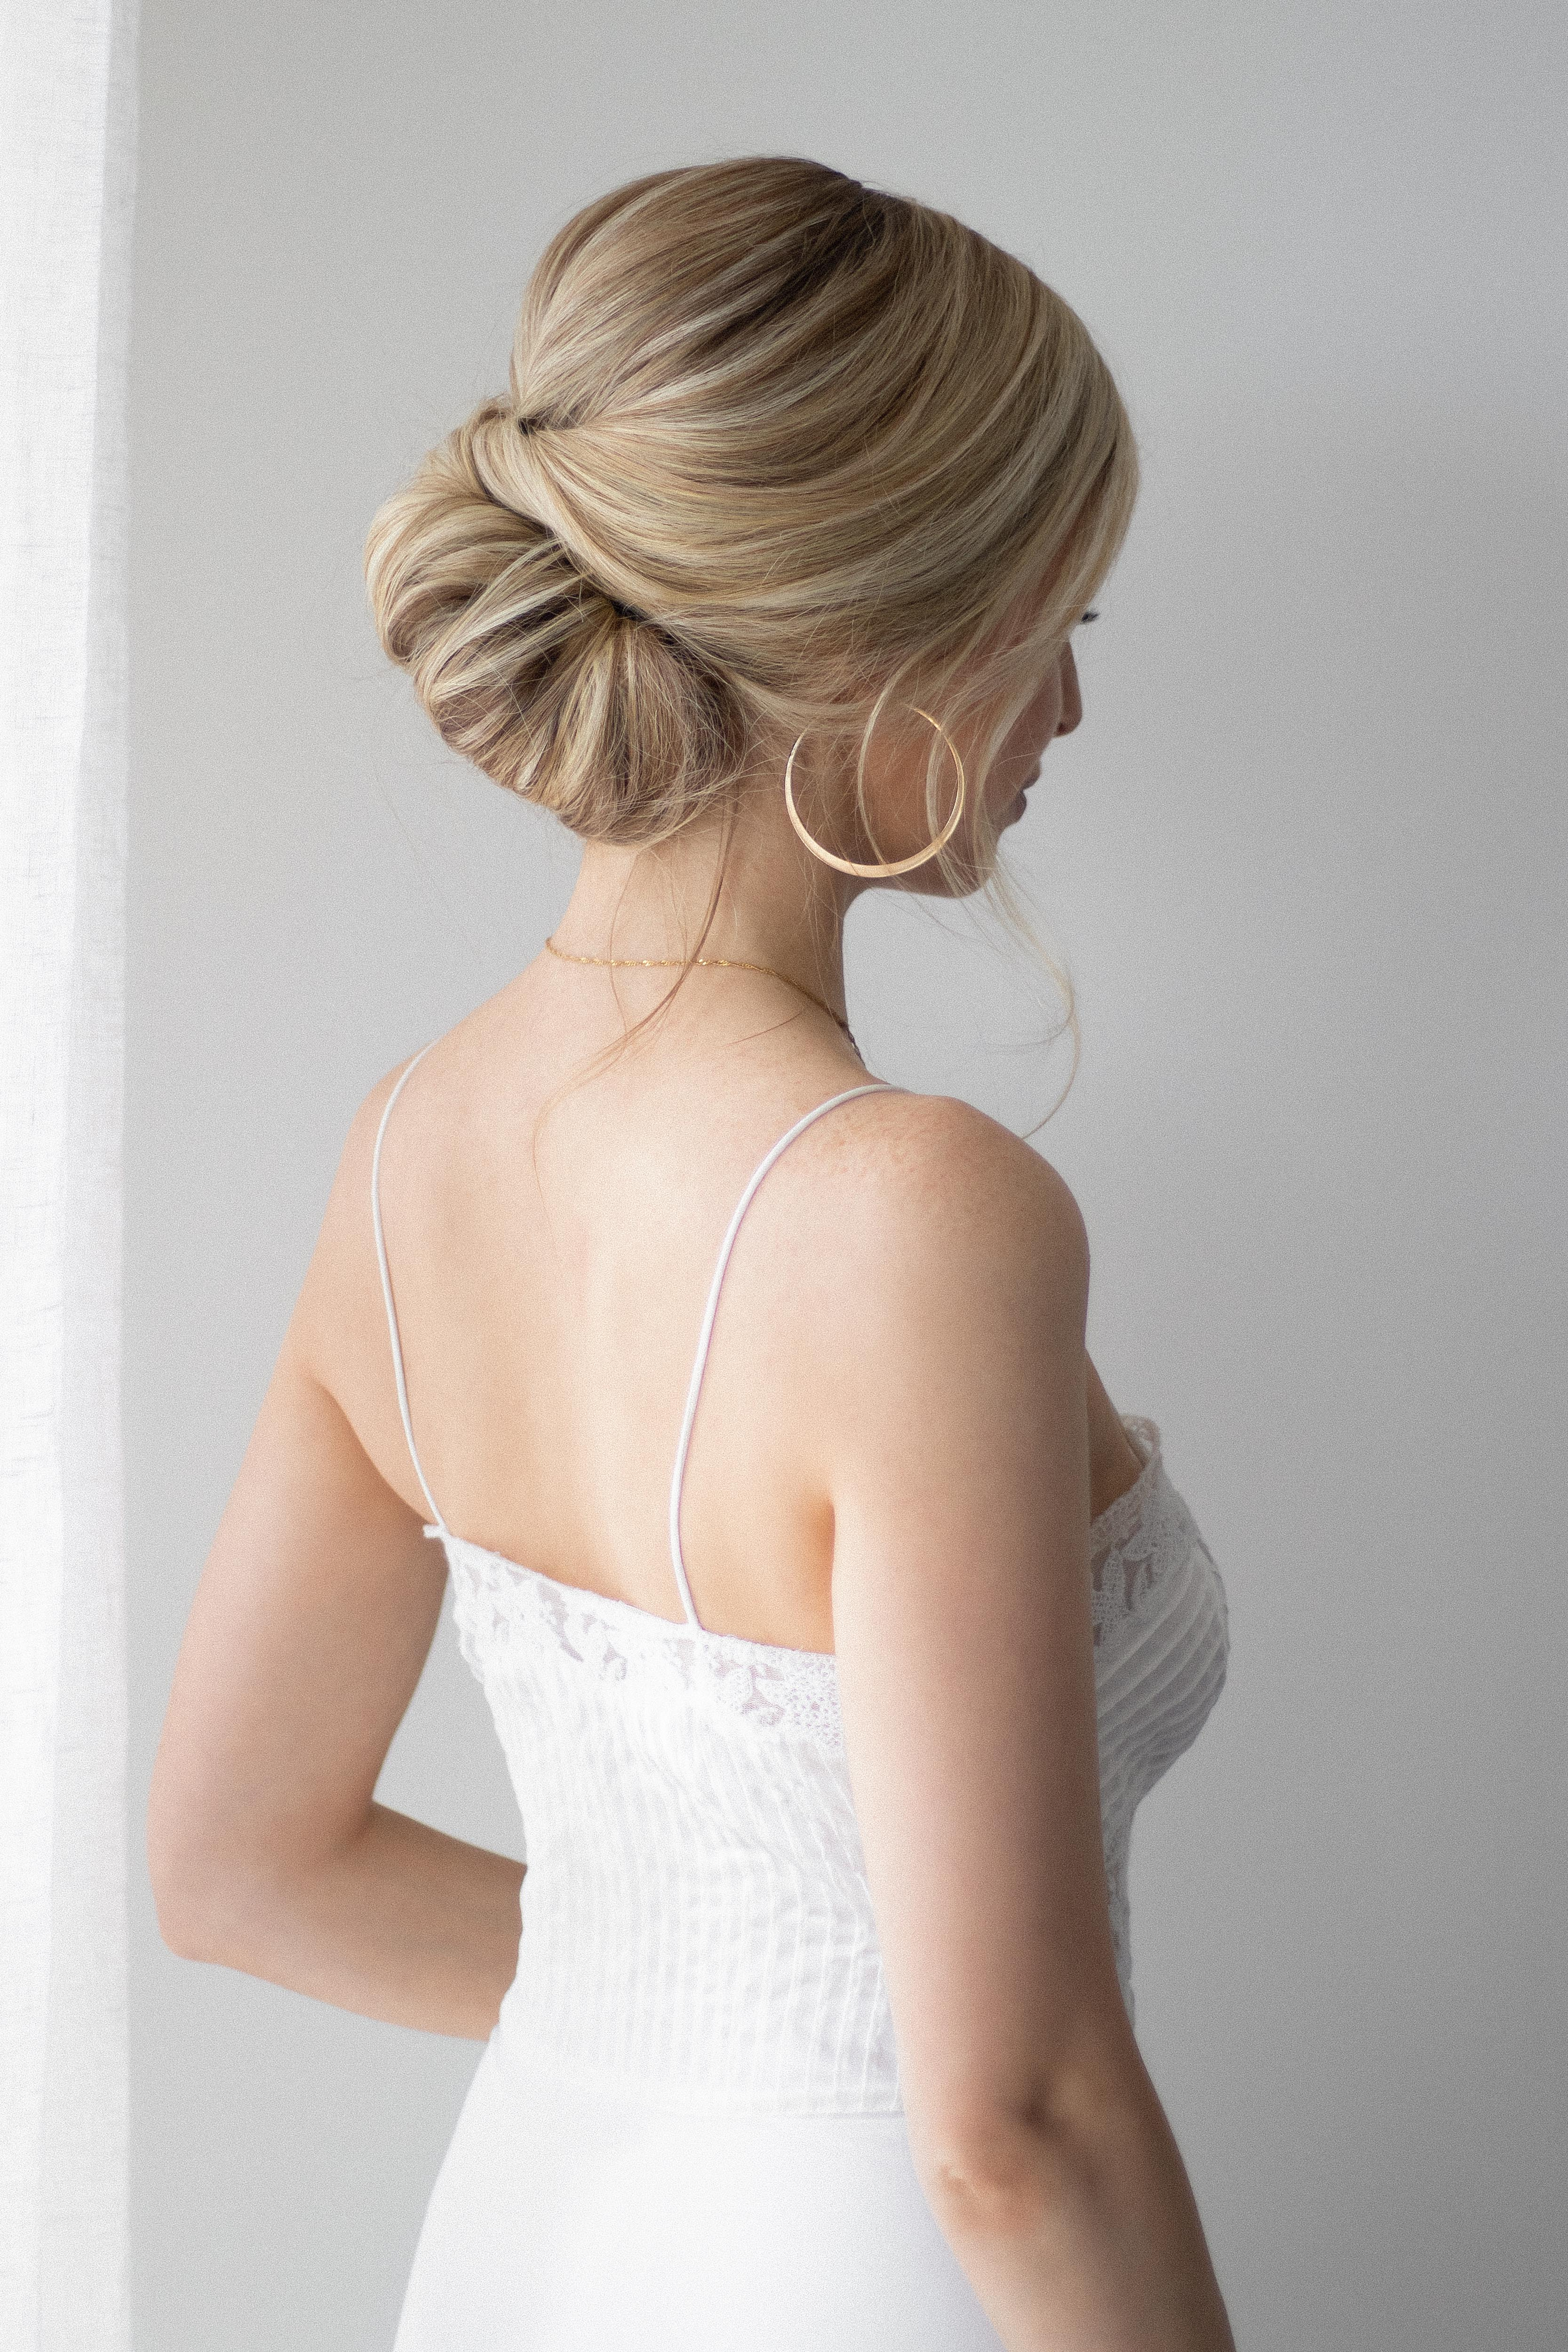 EASY UP DO HAIR TUTORIAL, THE PERFECT WEDDING HAIRSTYLE www.alexgaboury.com